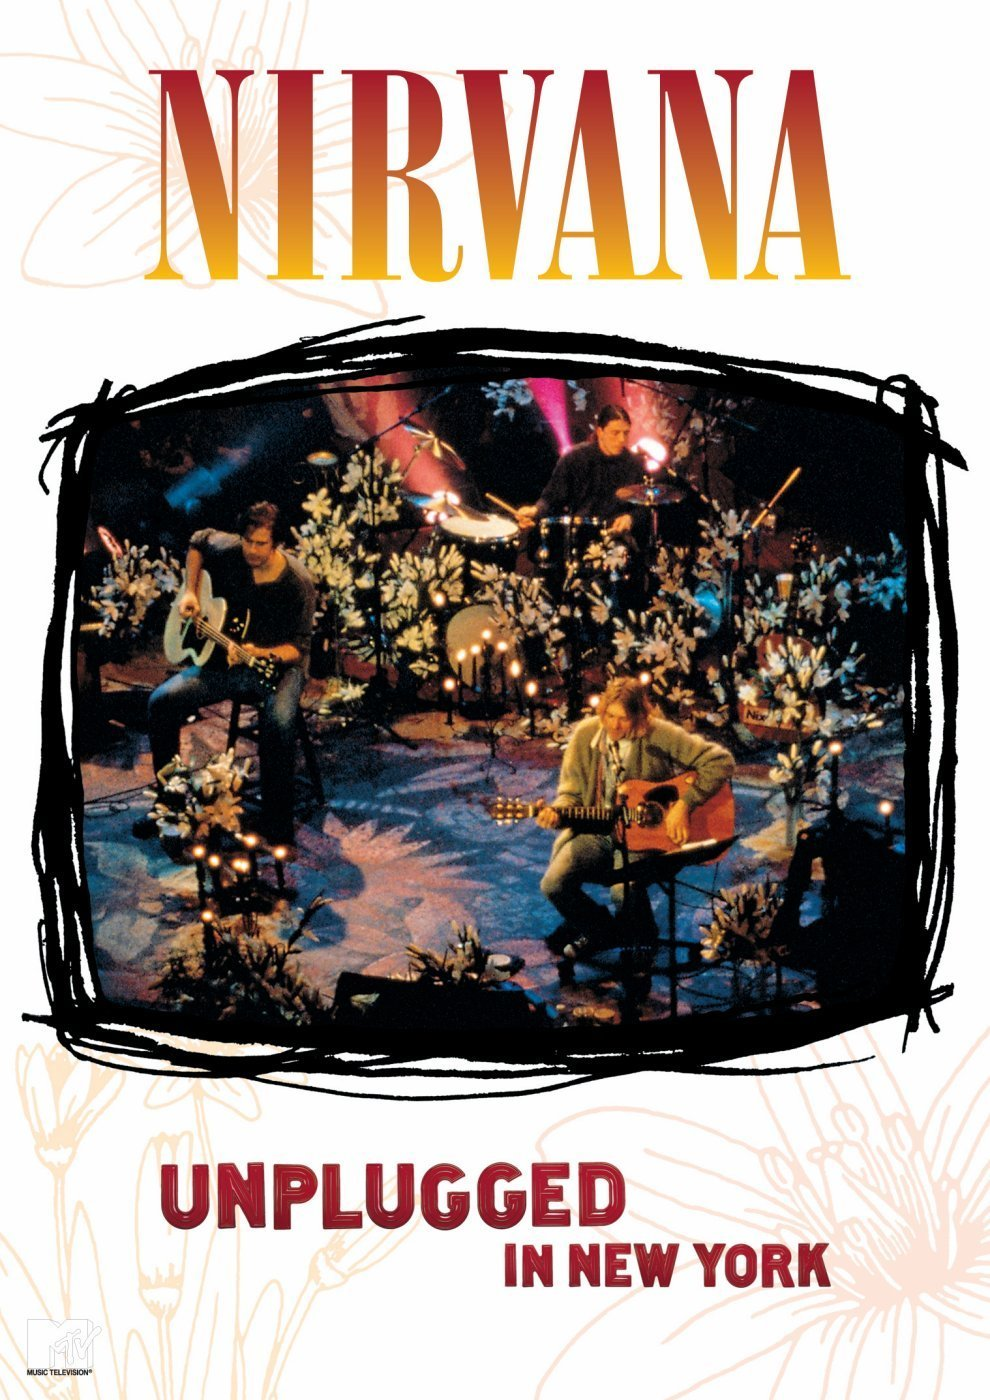 Nirvana Unplugged In New York DVD - Official Nirvana Website